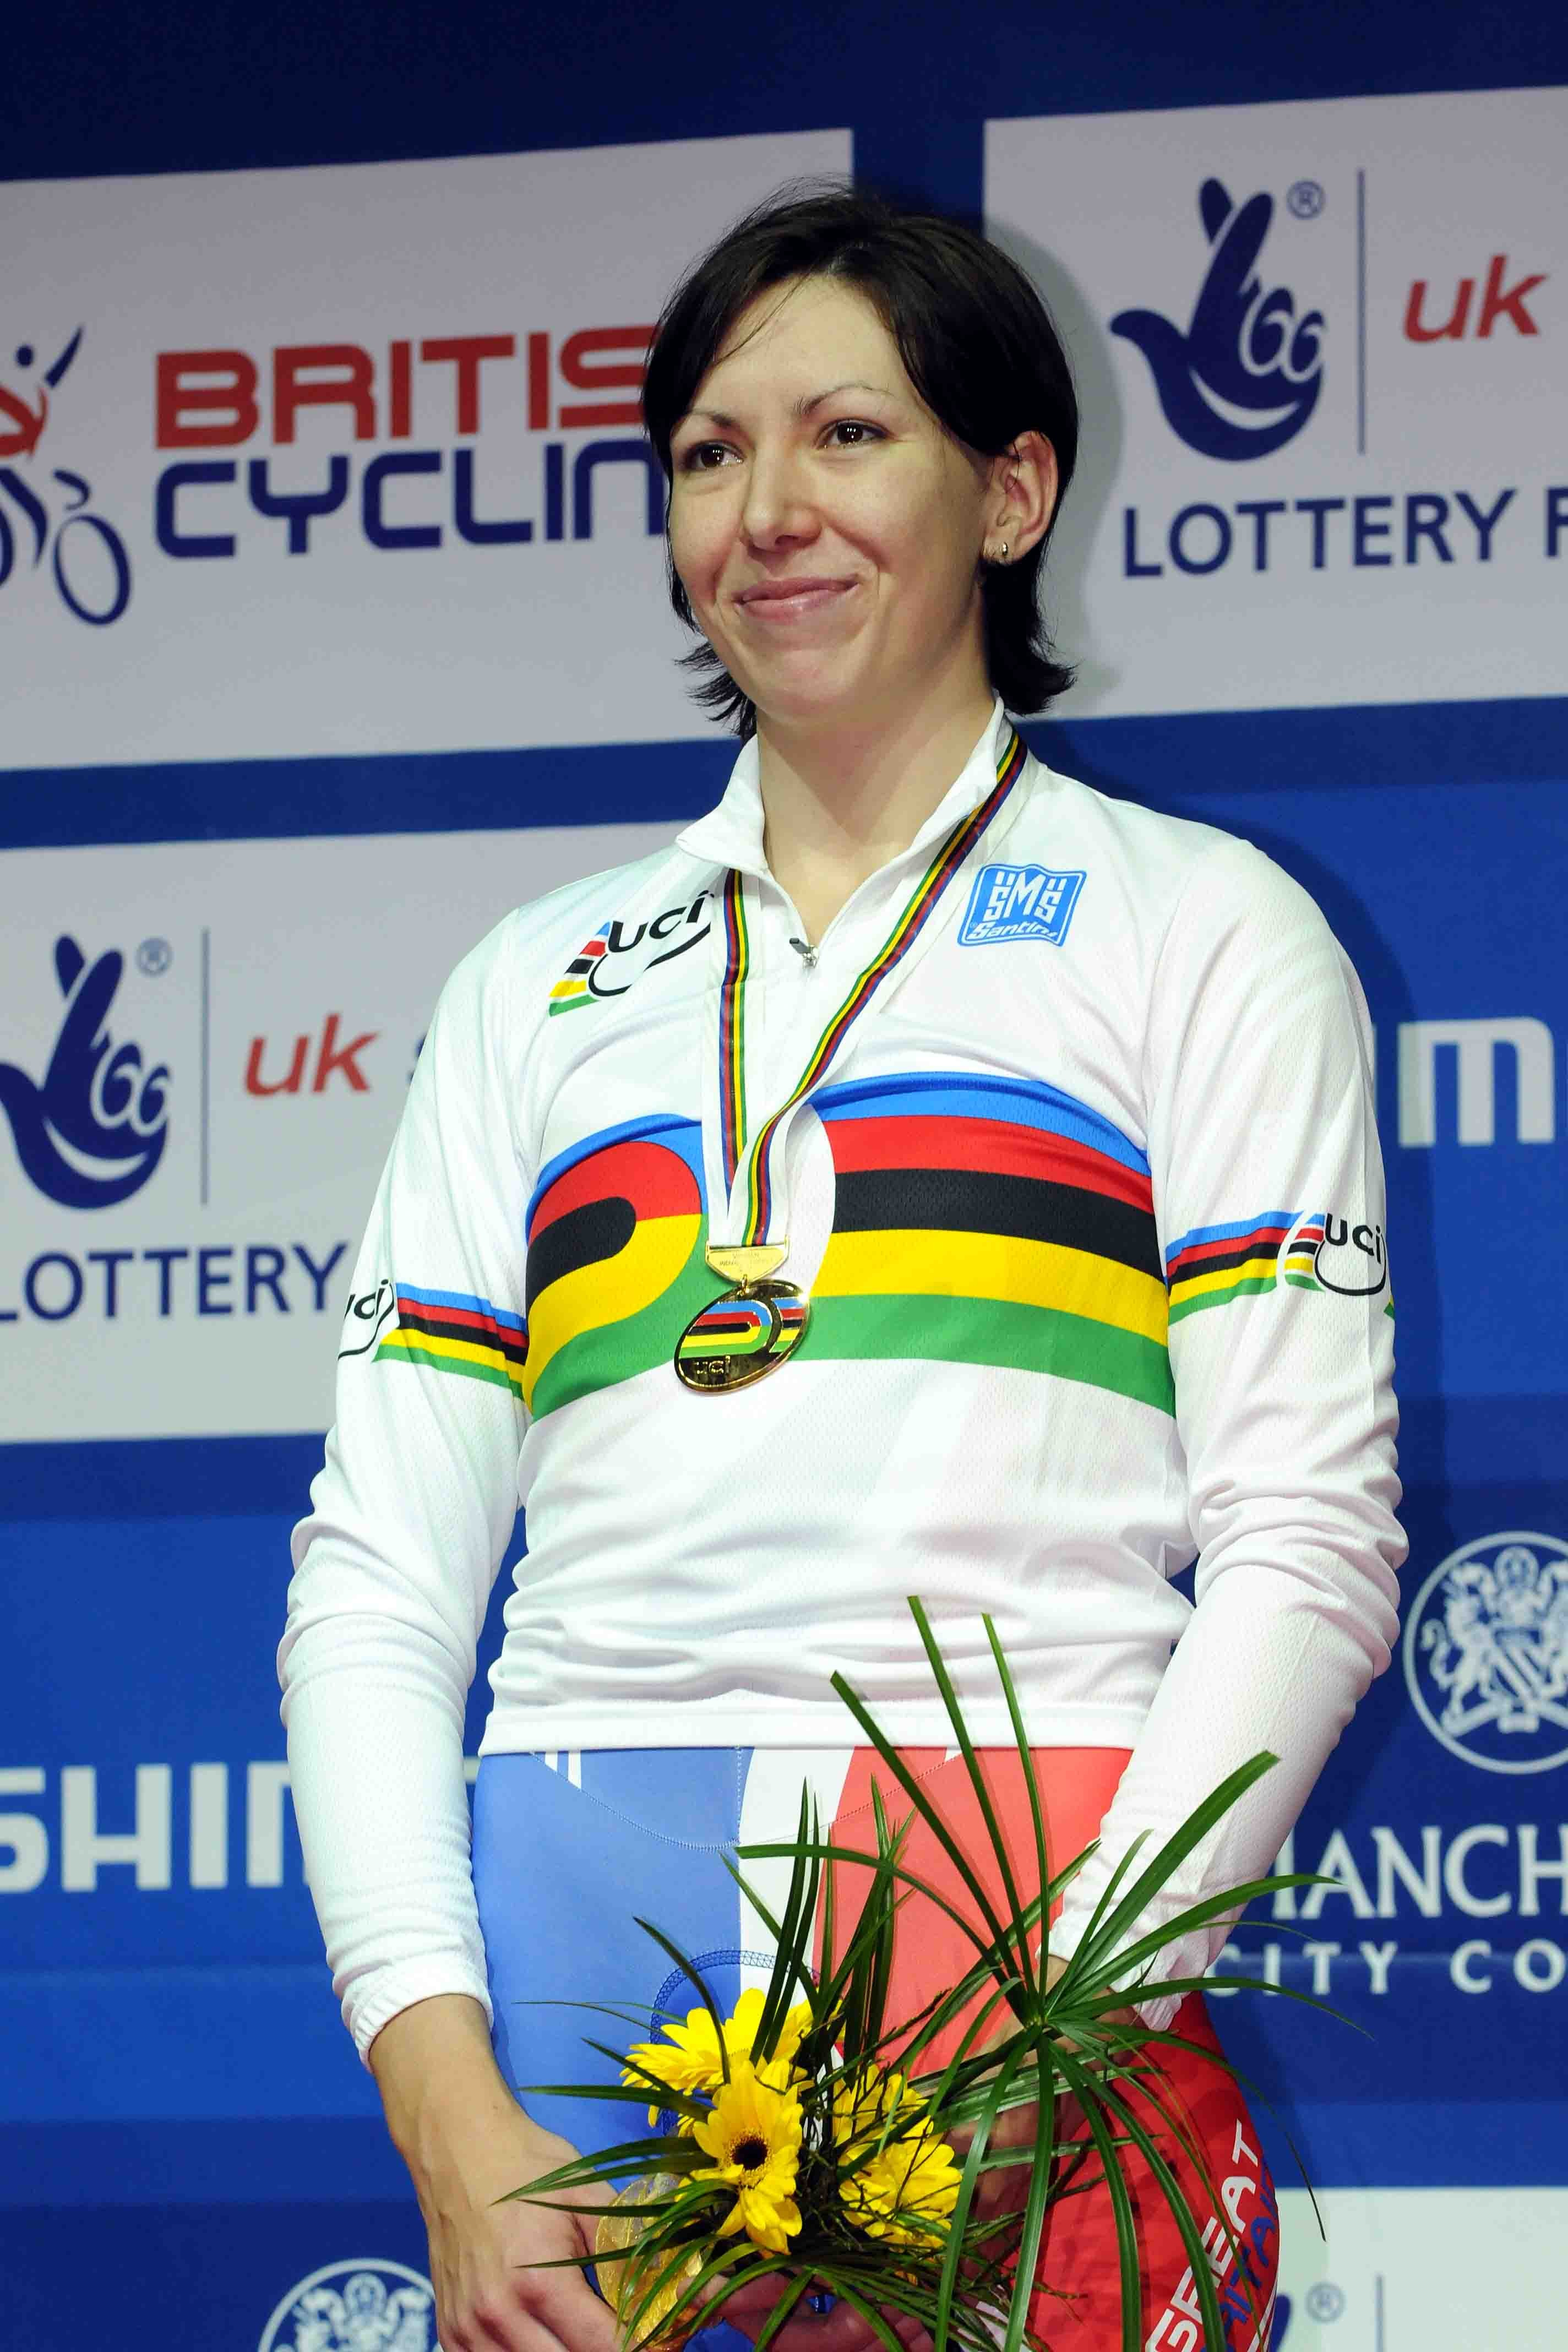 200820UCI20Track20Cycling20World20Championships20Day20220evening20010-99bef74